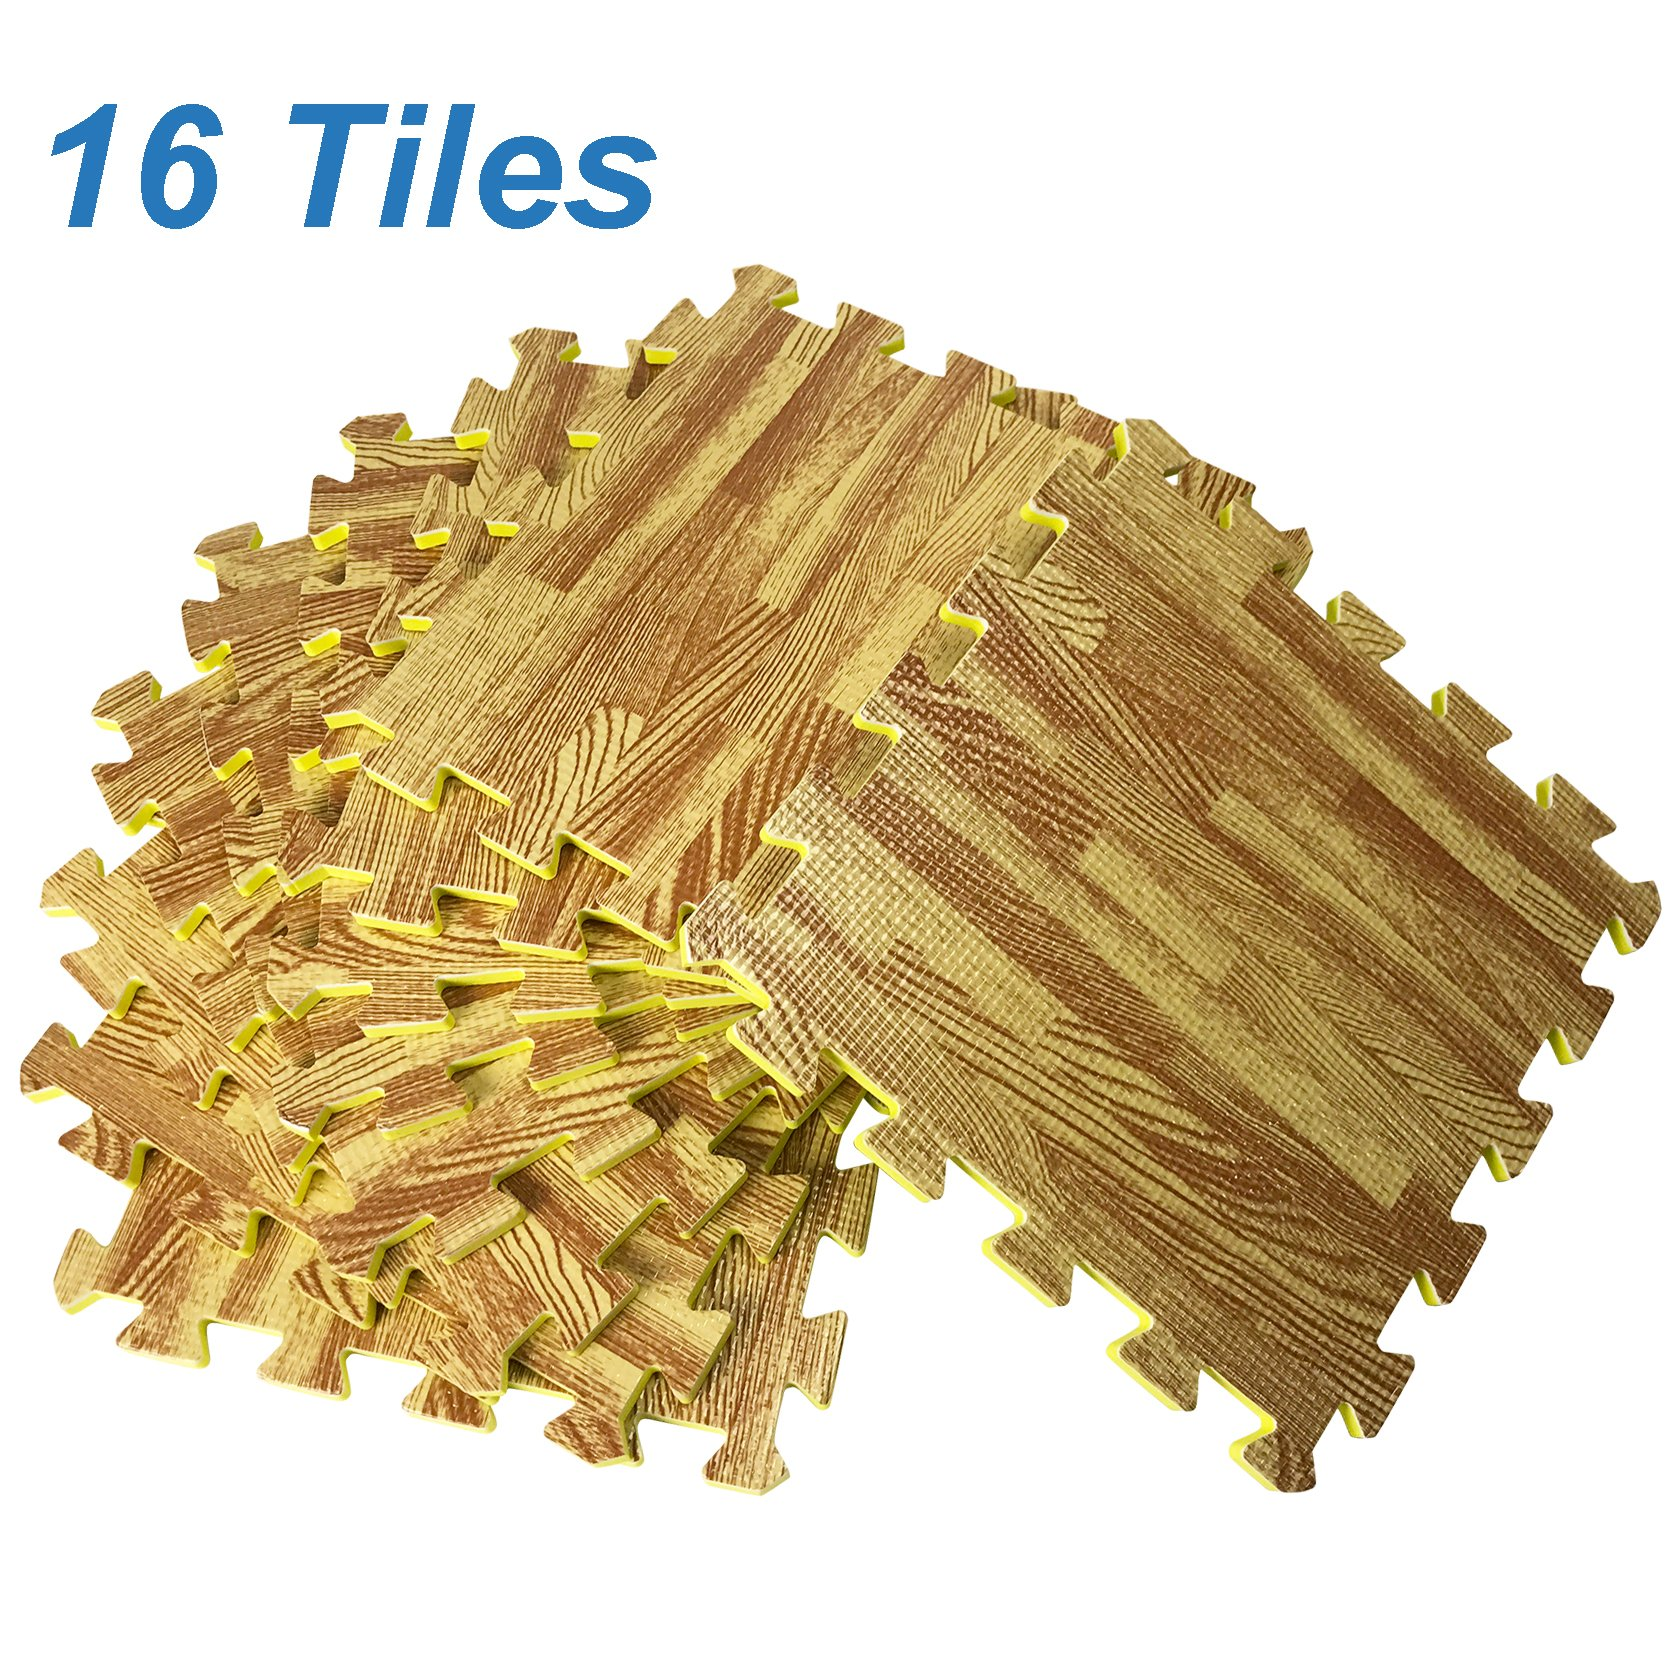 [Set of 16] Printed Wood Grain Floor Mat 3/8'' Thick Interlocking EVA Foam Puzzle Flooring Tiles - Each Tile Measures 1 Square Foot – for Home Office Playroom Basement